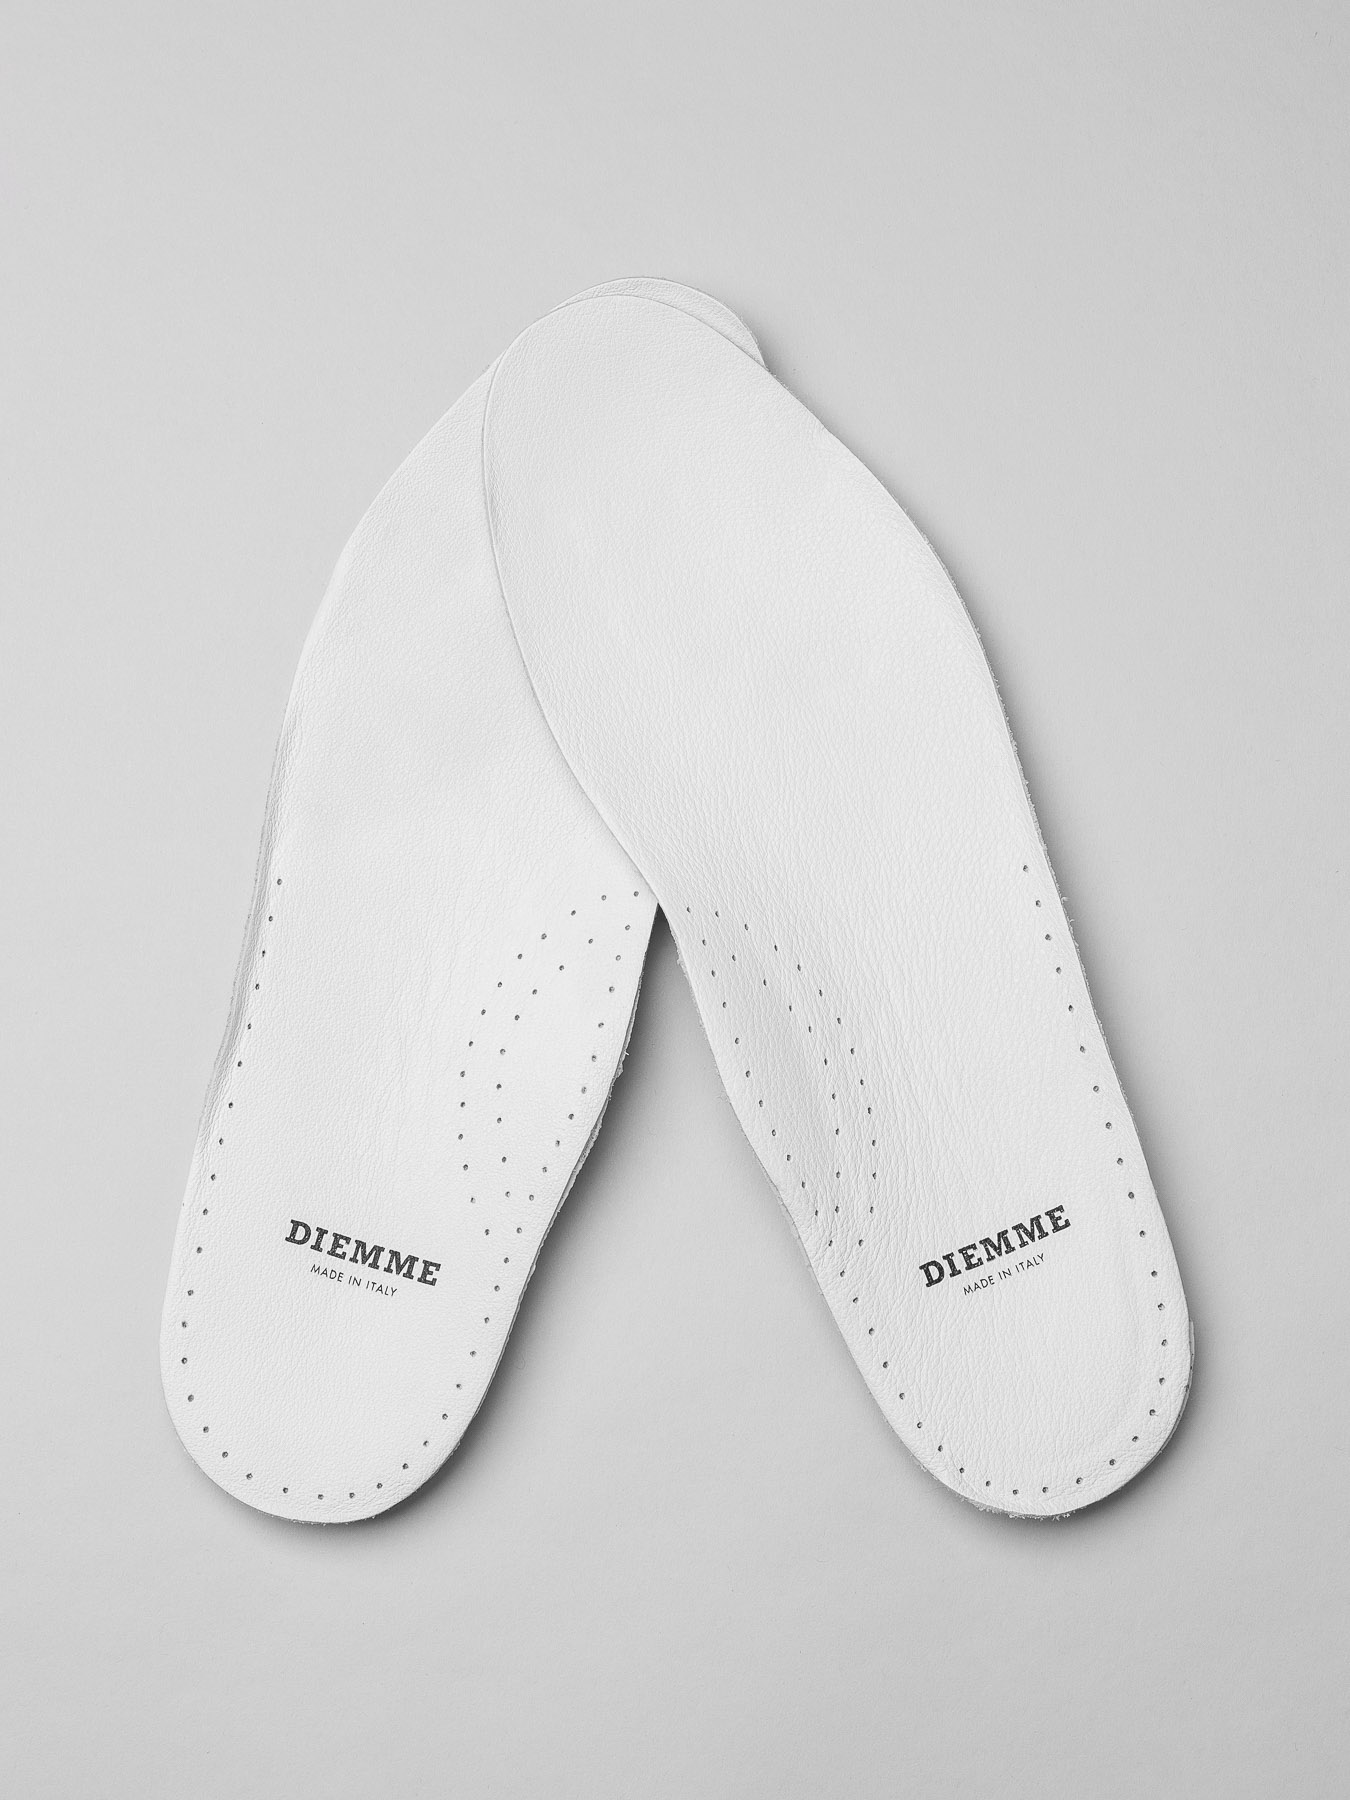 Diemme White Leather Insoles